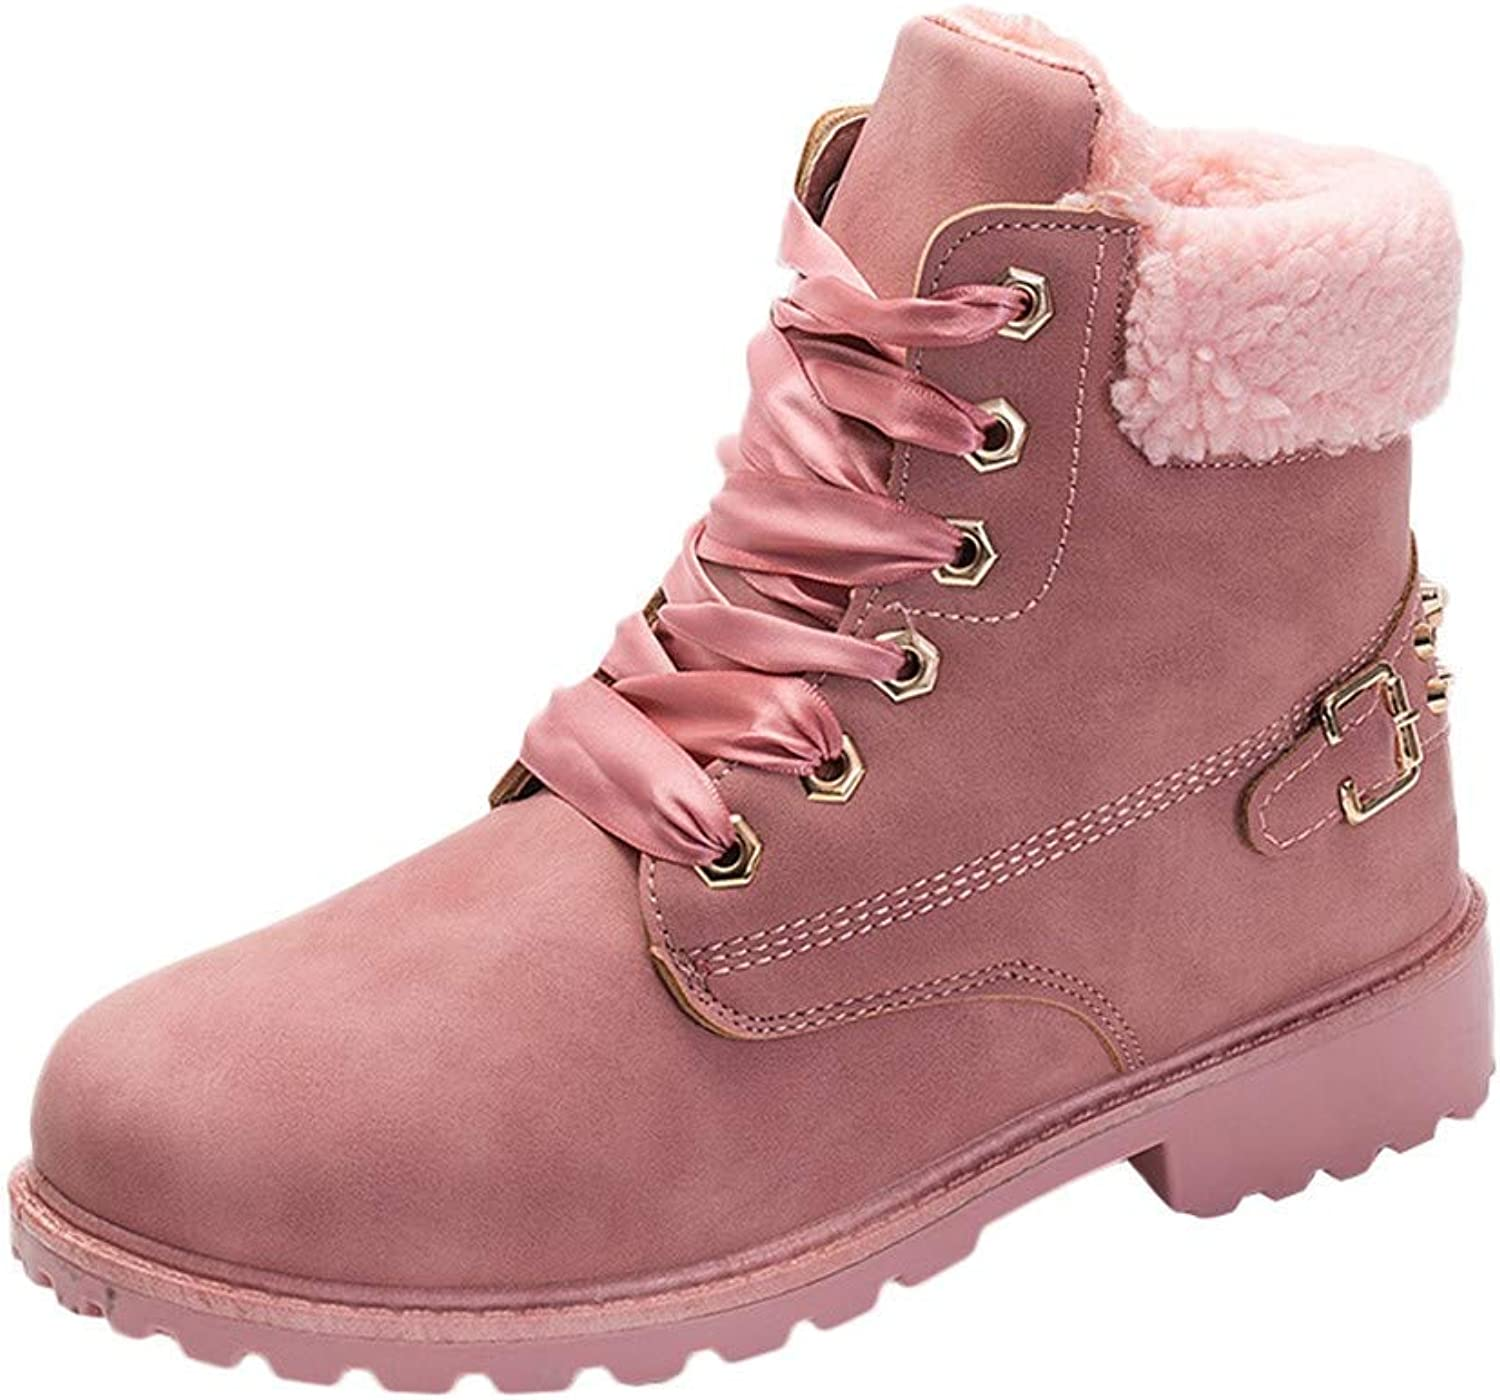 JaHGDU Women Solid Lace Up Boots Casual Ankle Boots Round Toe shoes Winter Snow Boots color Pink PU Leather for Womens